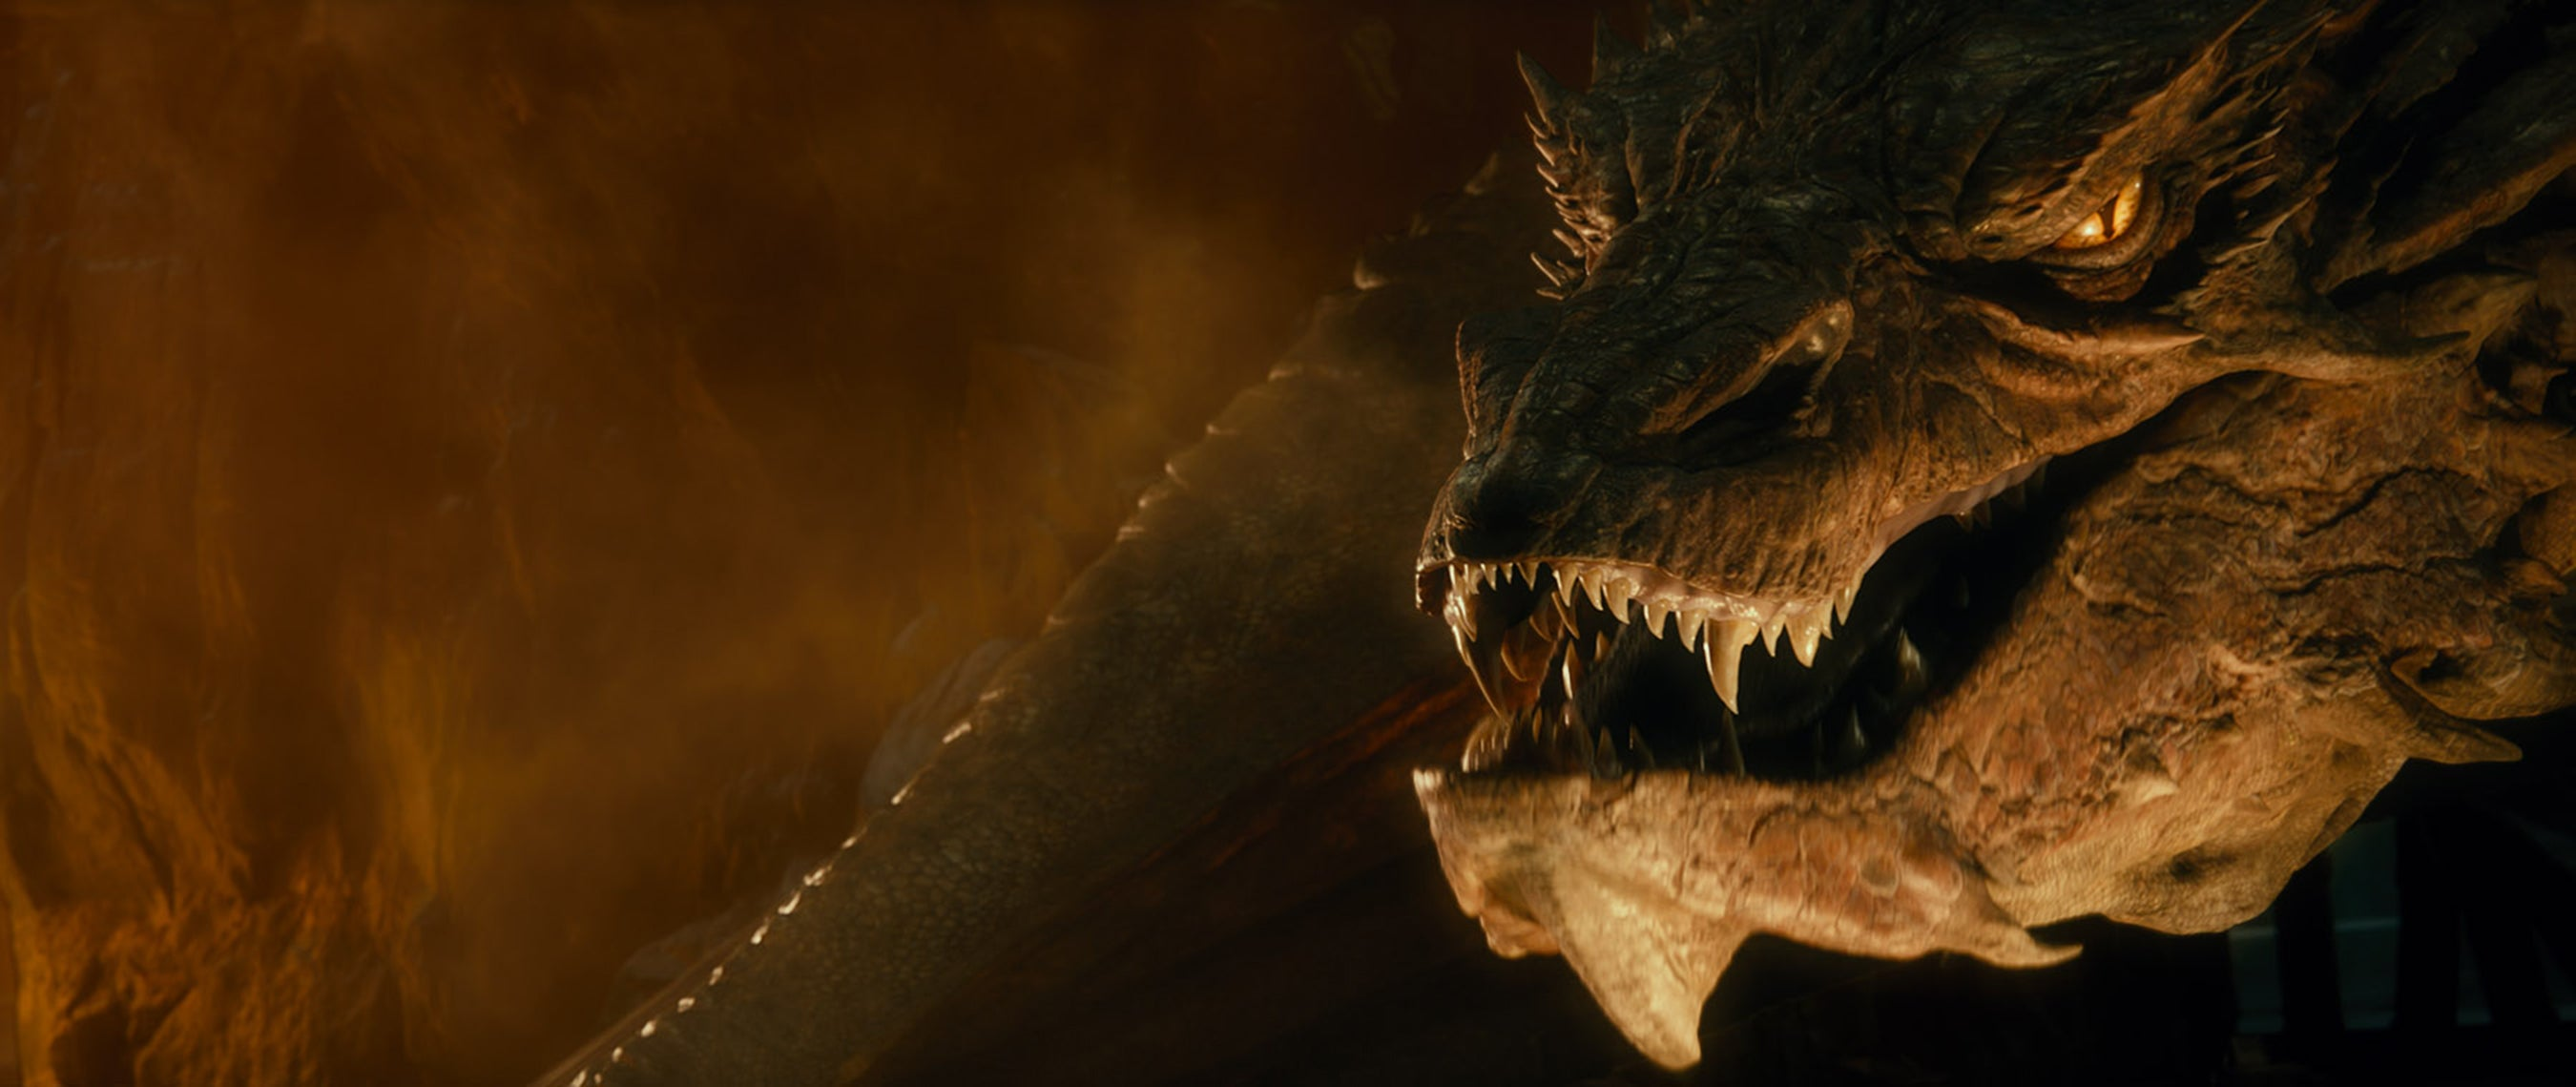 So This Is What It's Like to Get Burnt to a Crisp By Smaug the Dragon